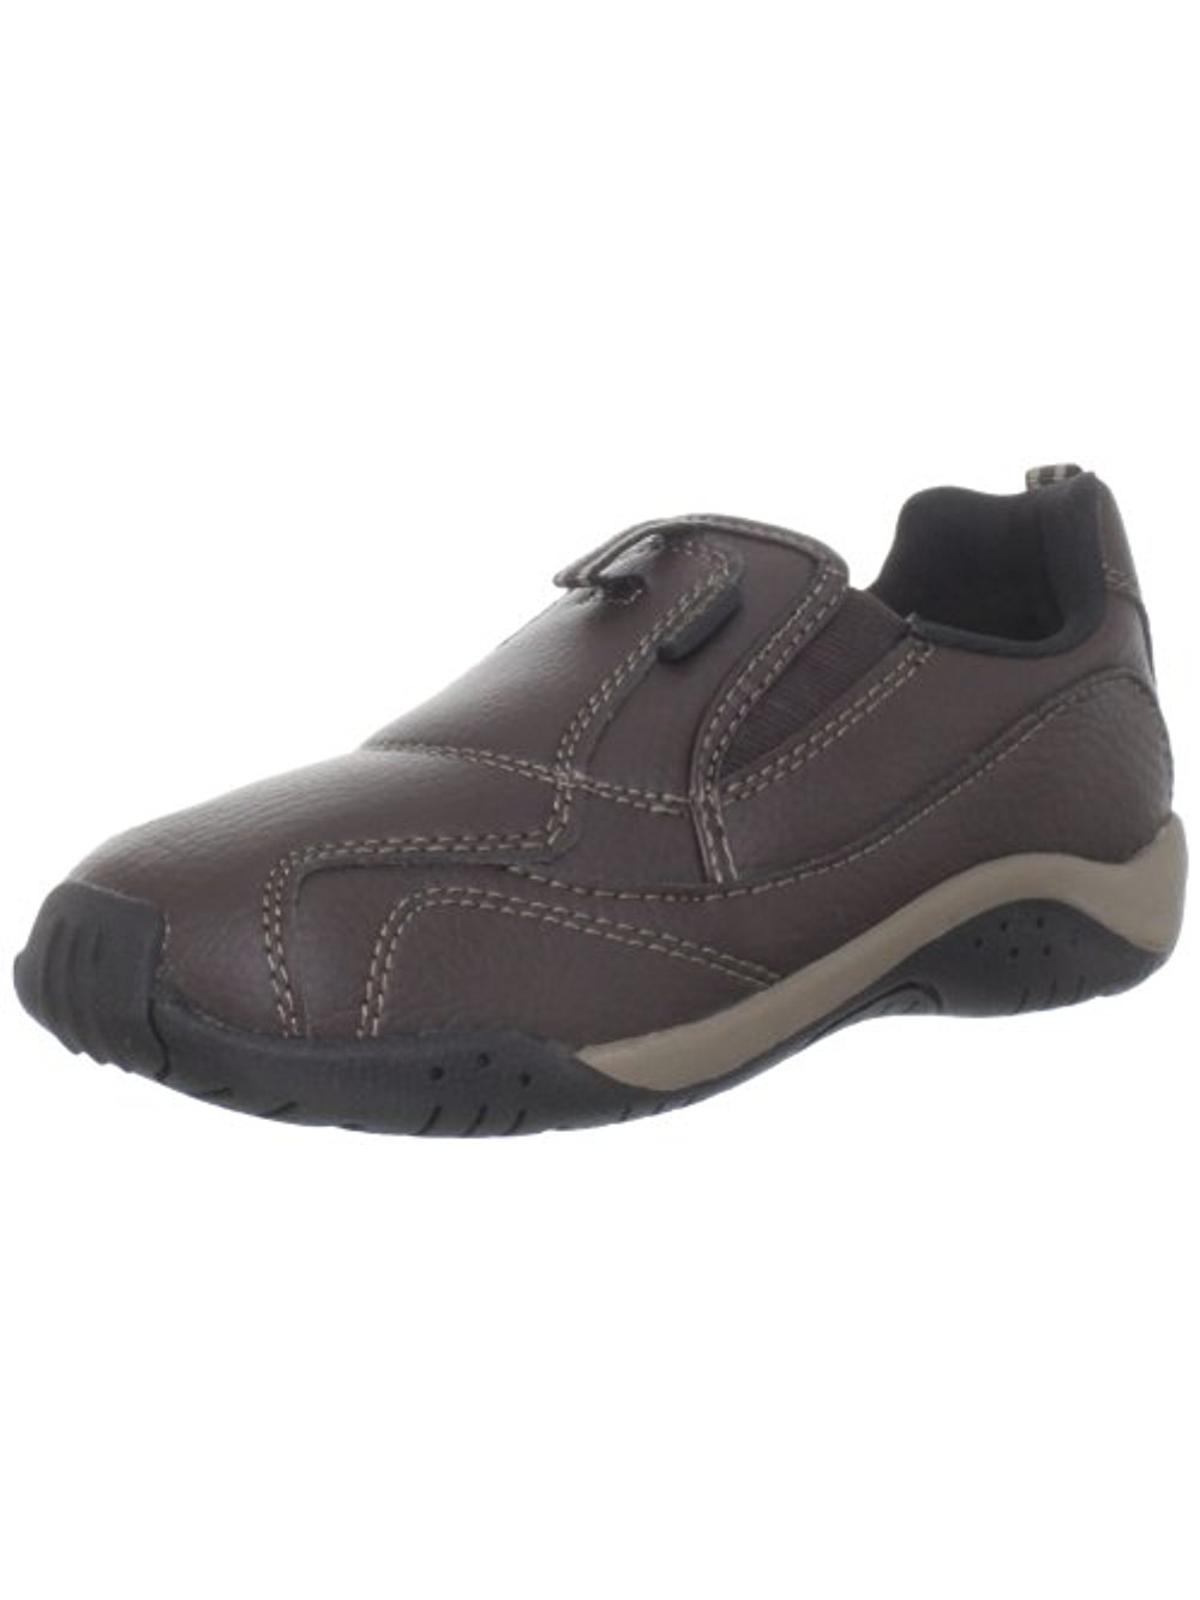 Pediped Boys Vail Faux Leather Loafers